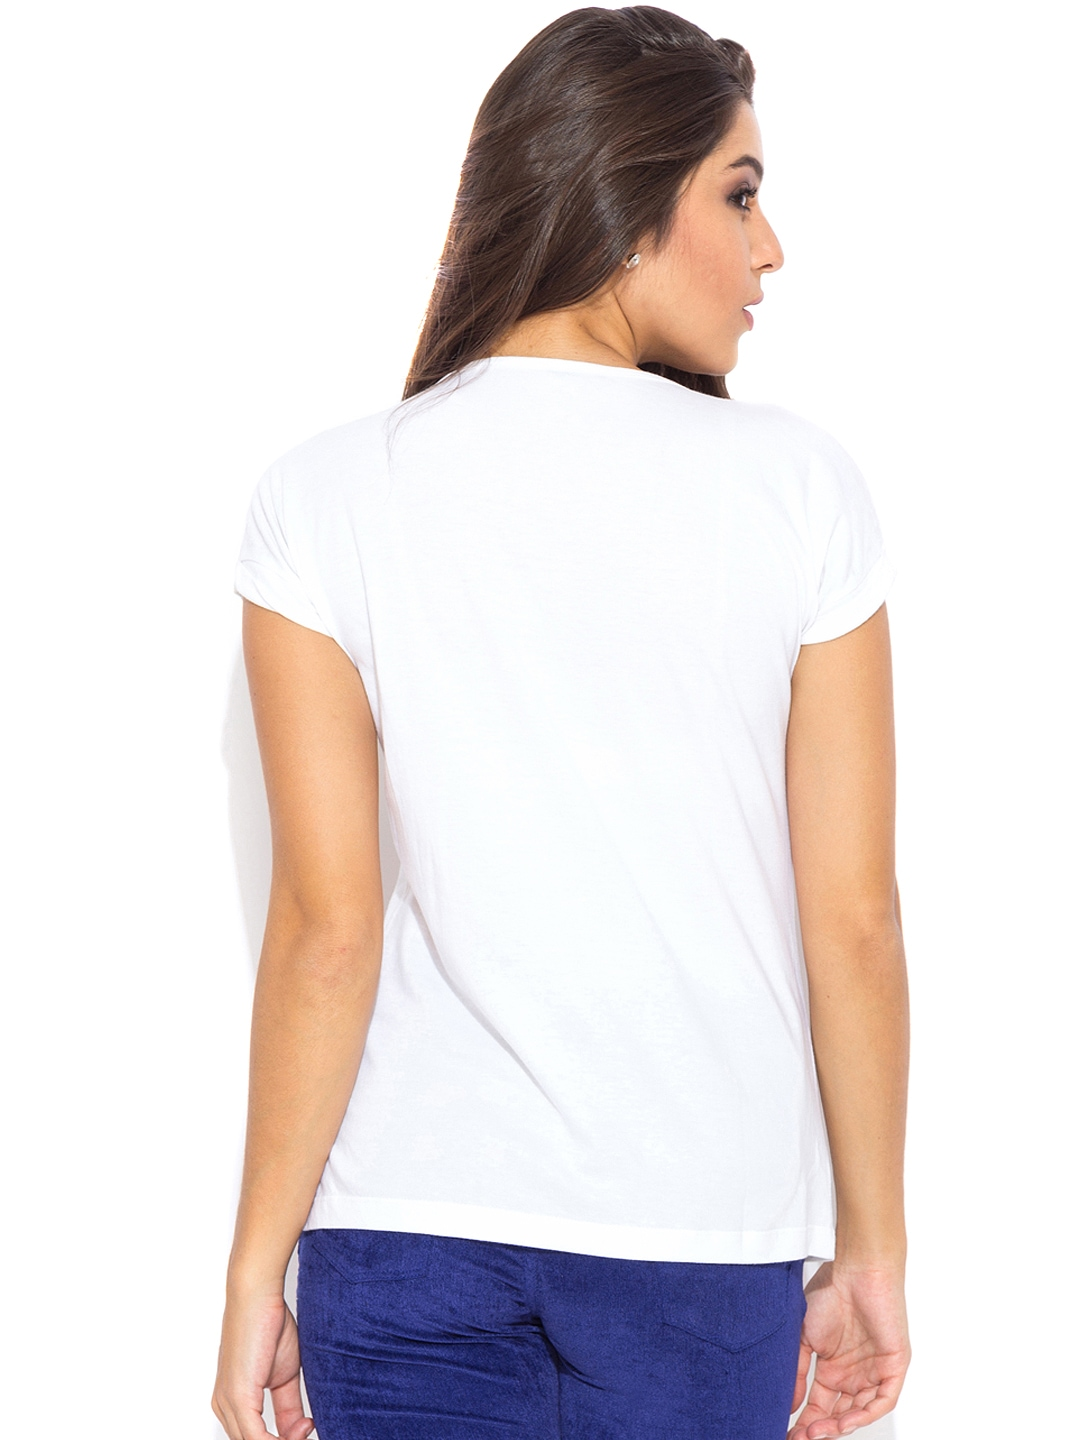 Myntra globus white printed t shirt 910938 buy myntra for Online printed t shirts